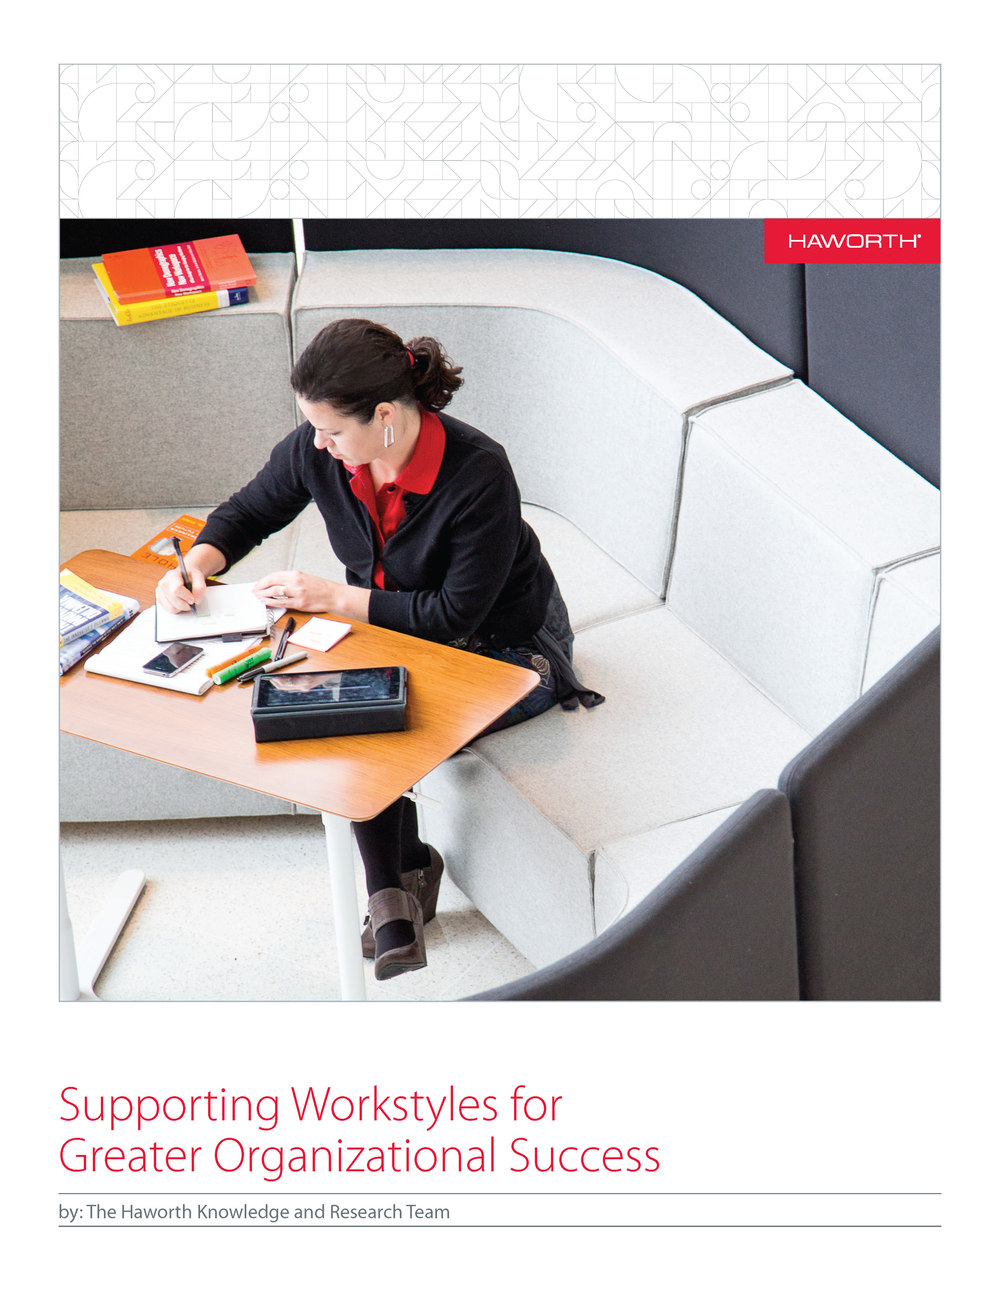 Supporting Workstyles for Greater Organizational Success: courtesy of Haworth